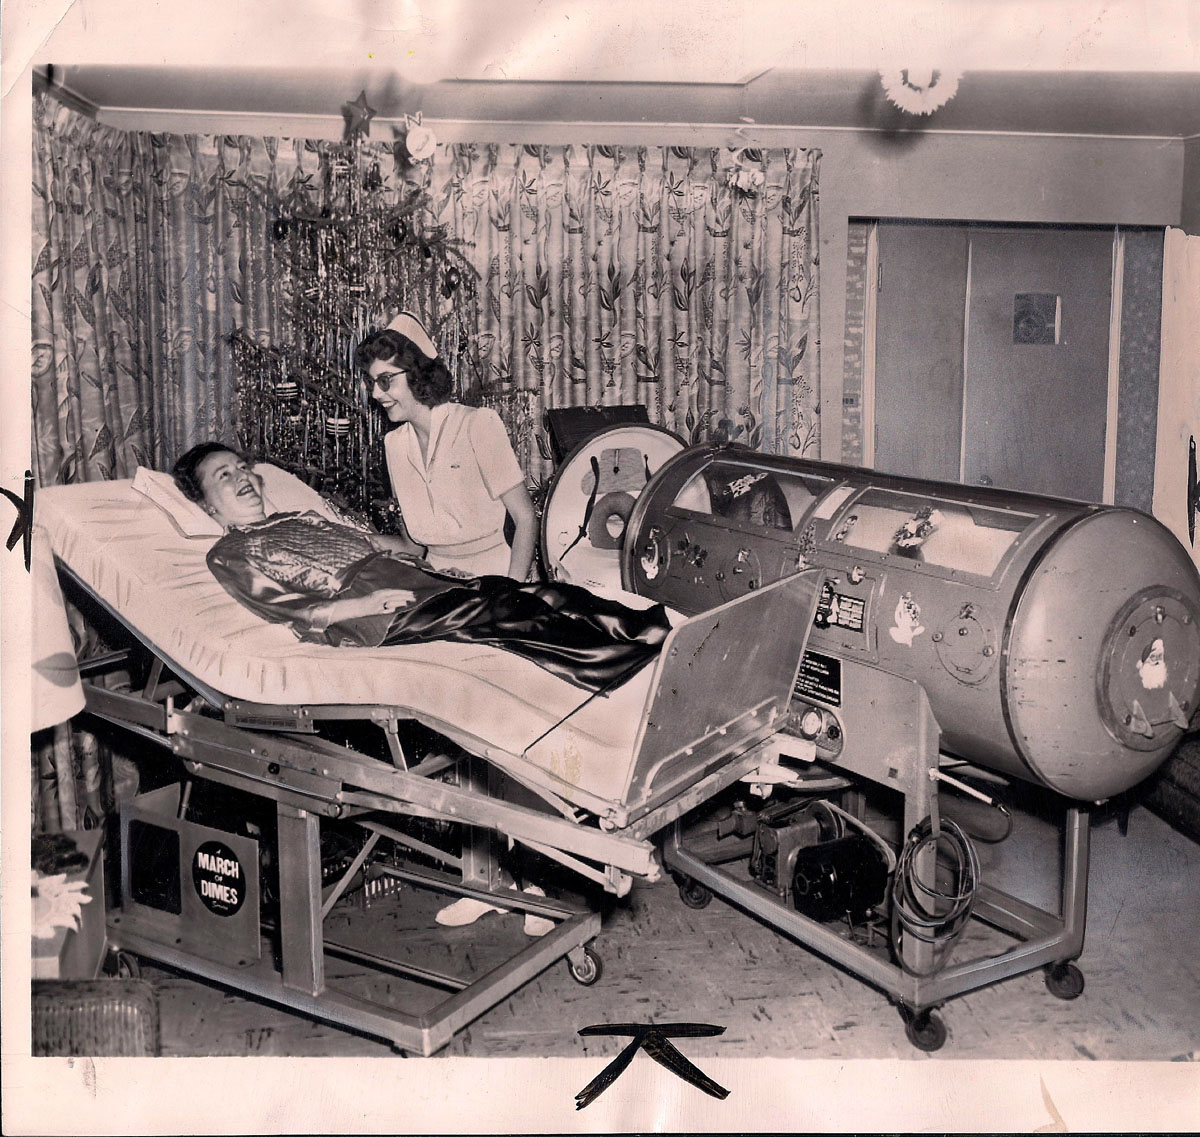 1960 Rocking Bed and Iron Lung